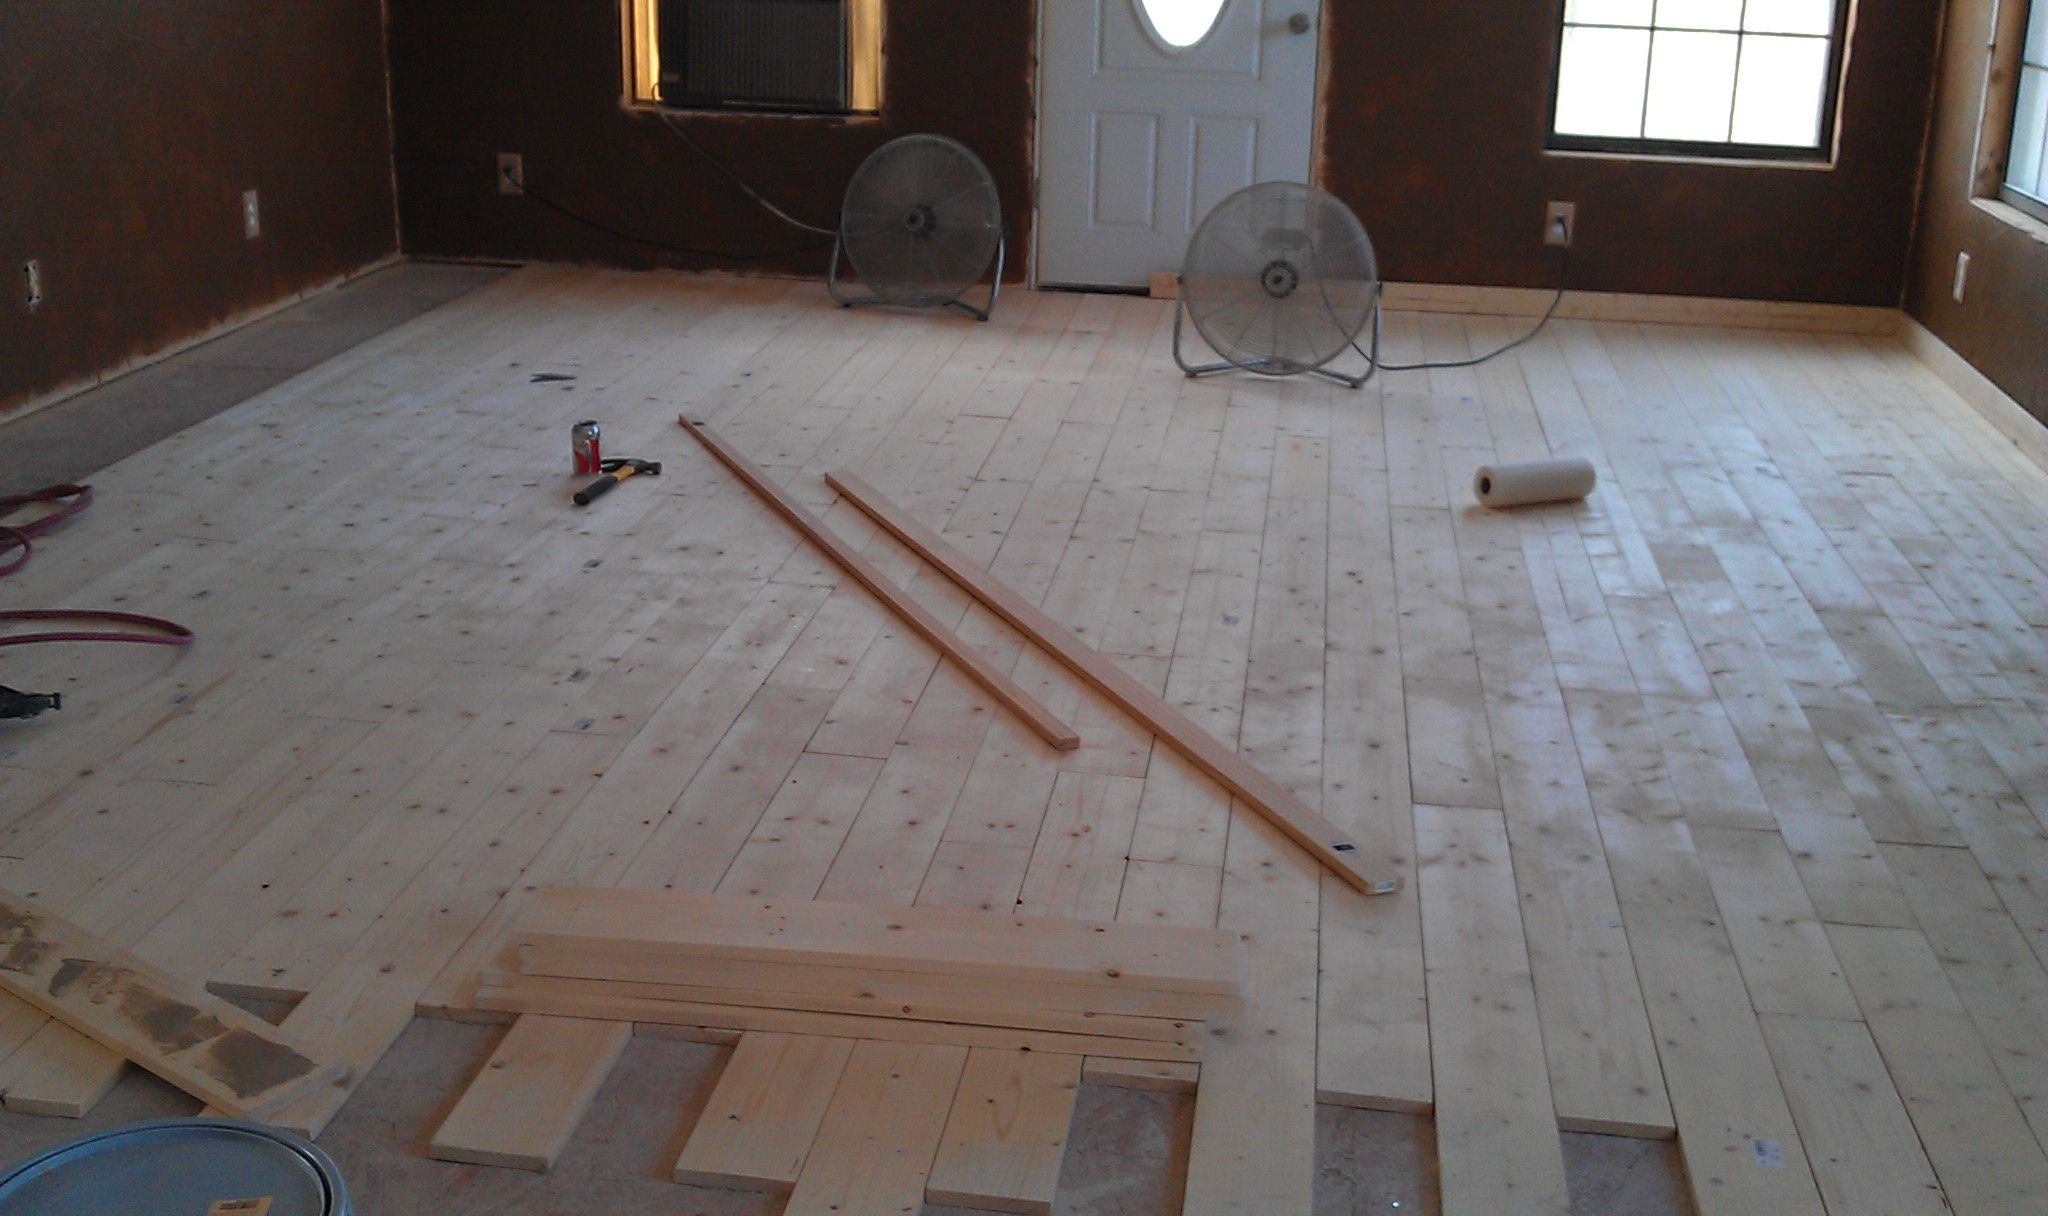 Flooring From 1x6 Lumber 1 25 Sq Ft Locally Which Means My 2400 Sq Ft Dream Home Would Only Cost About 2500 Plus Stain Flooring Lumber Rustic Kitchen